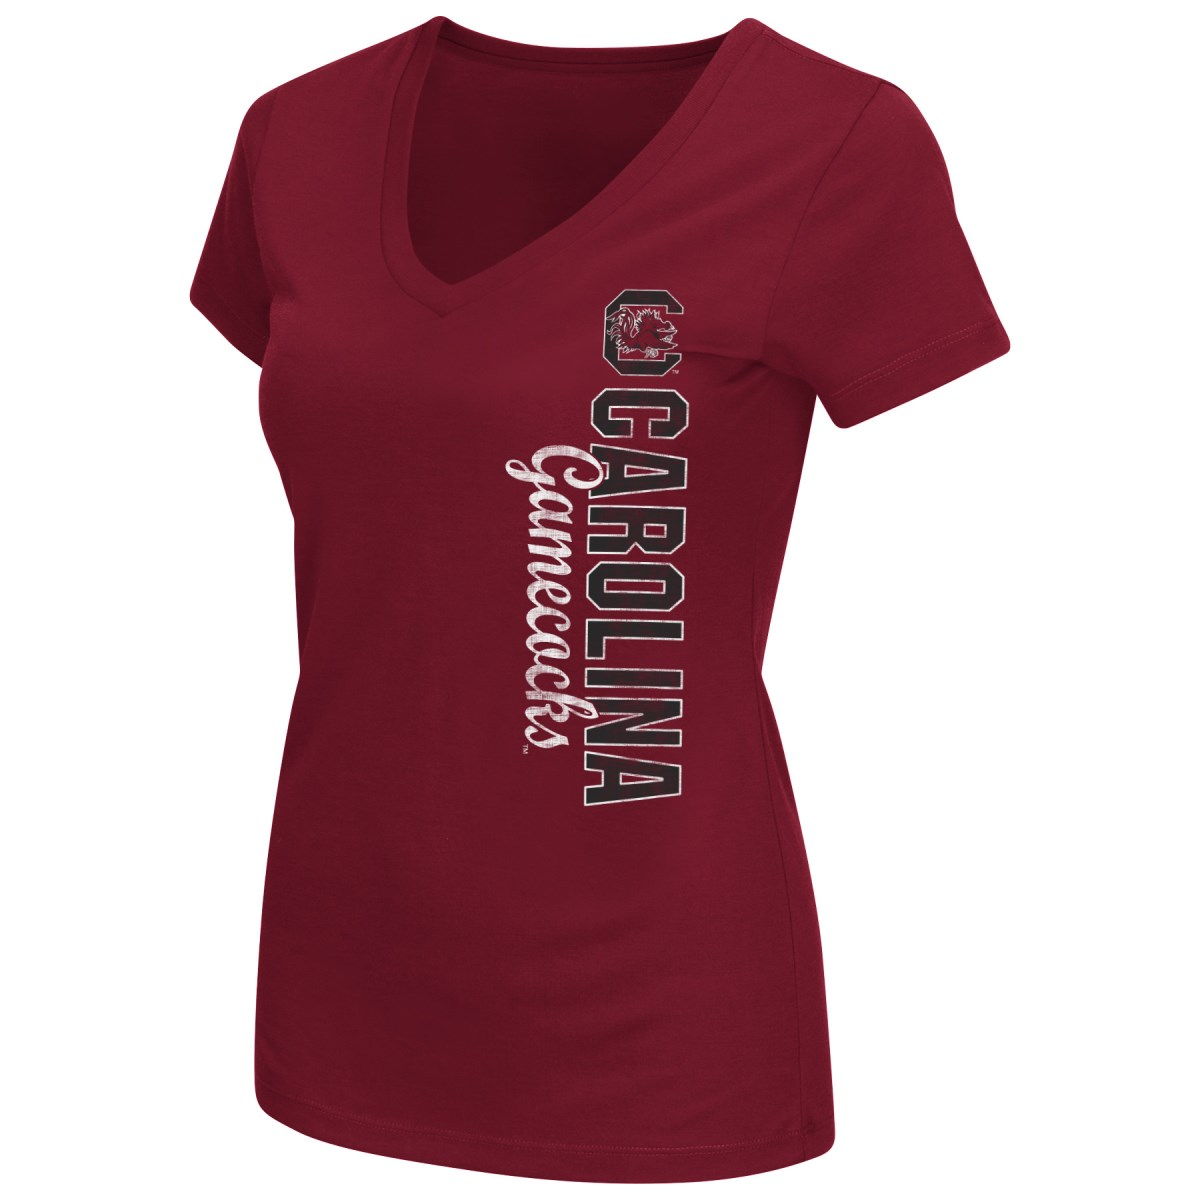 South Carolina Gamecocks Women's NCAA Compulsory Dual Blend Short Sleeve T-Shirt